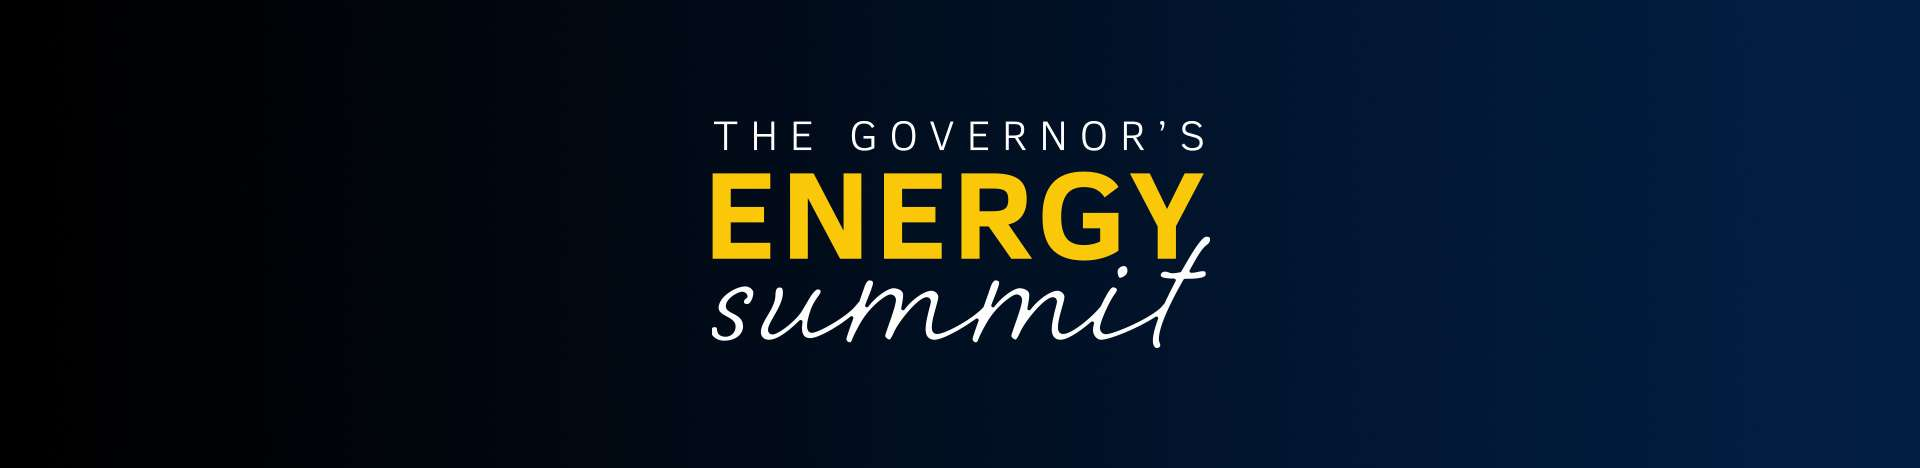 The Governor's Energy Summit